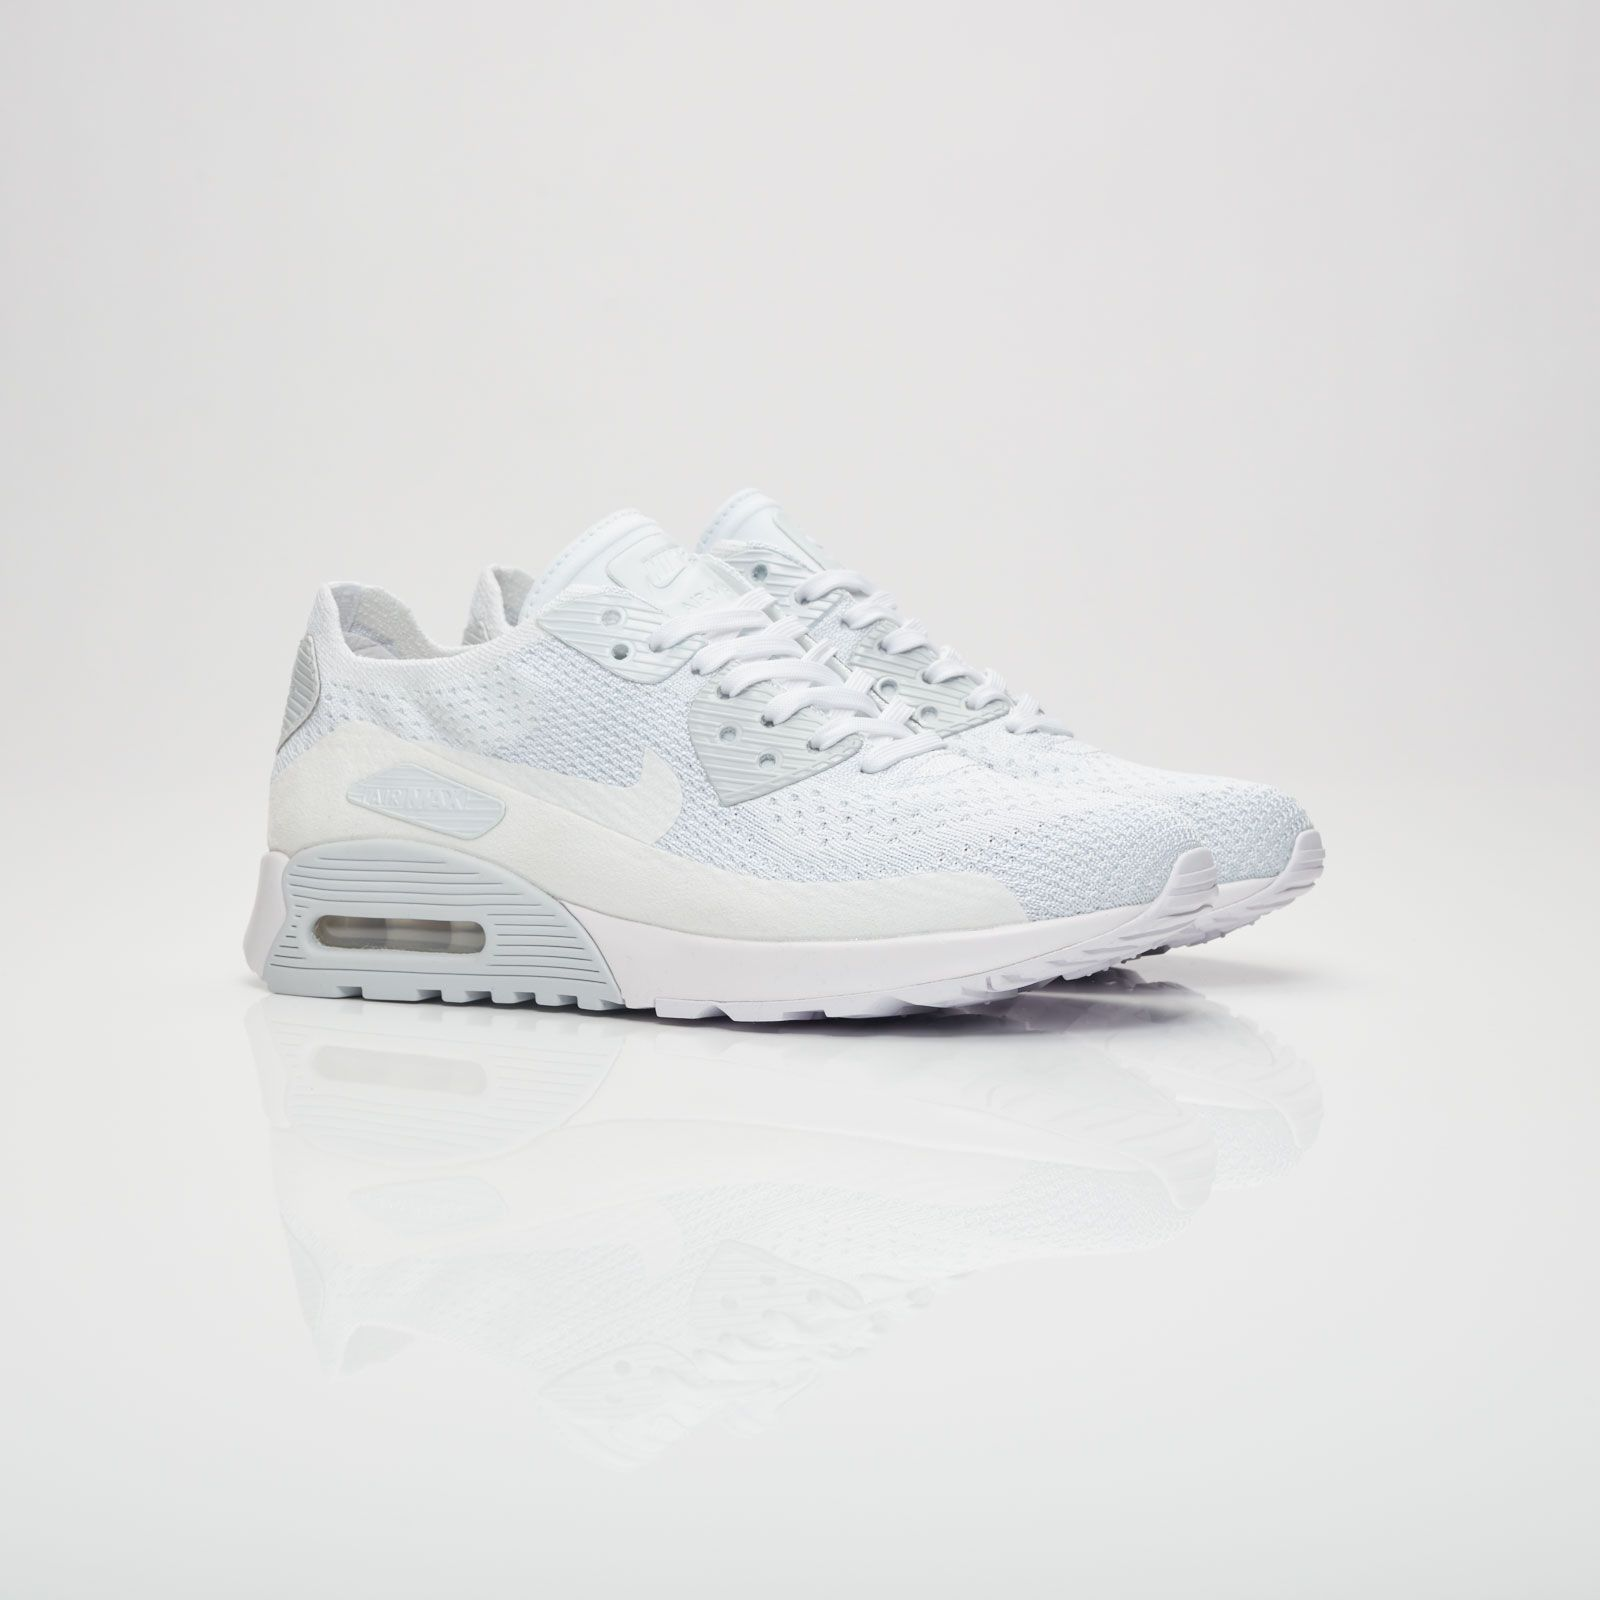 new styles 506f2 bd178 7d7e5 82e0d  coupon code for nike sportswear wmns air max 90 ultra 2.0  flyknit 6be7d 81a40